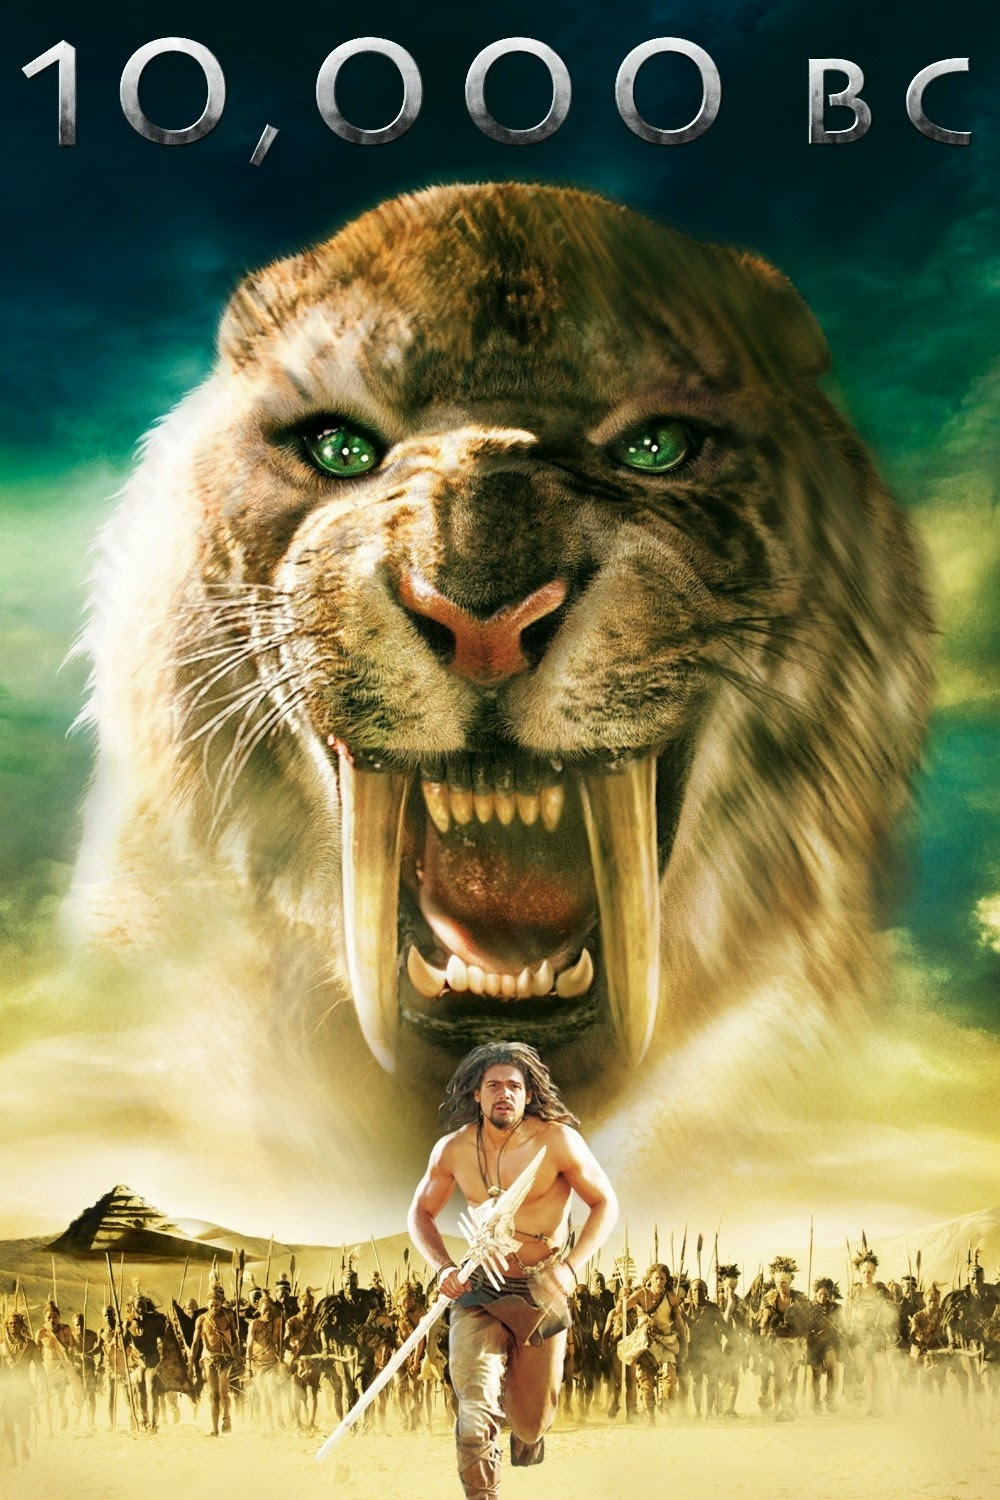 10000 bc full movie in hindi hd free download